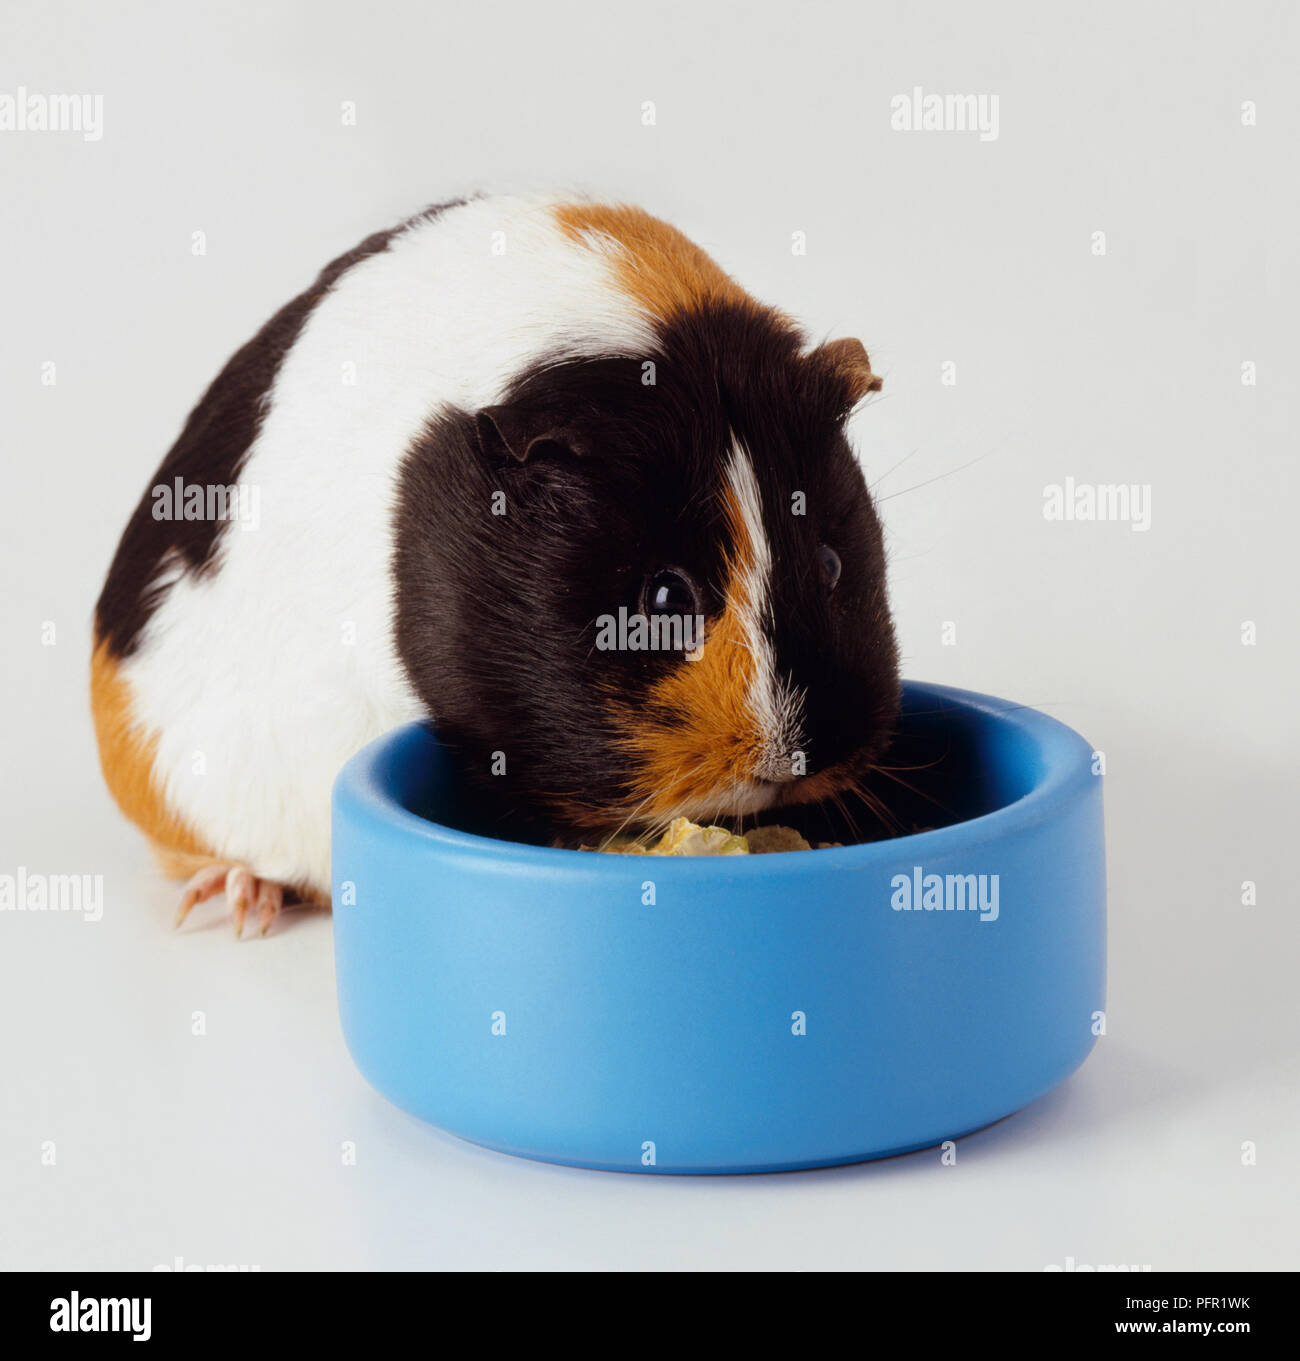 Tortoiseshell coloured guinea pig eating from a food bowl